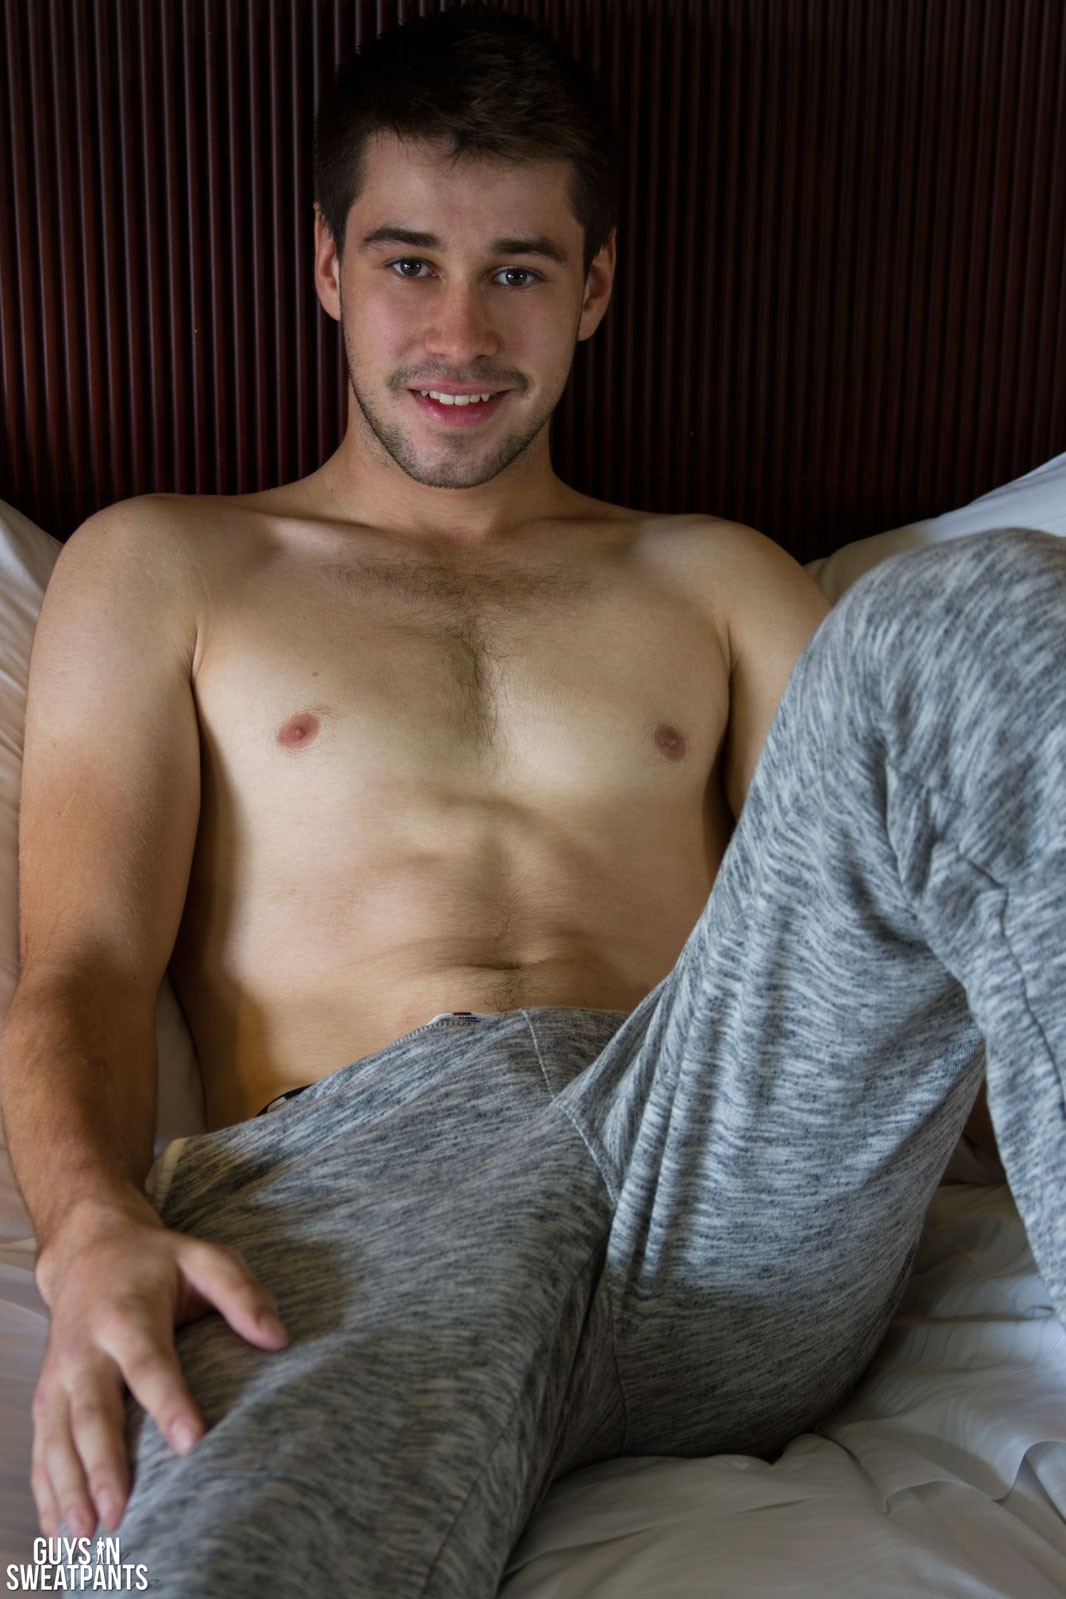 Guysinsweatpants